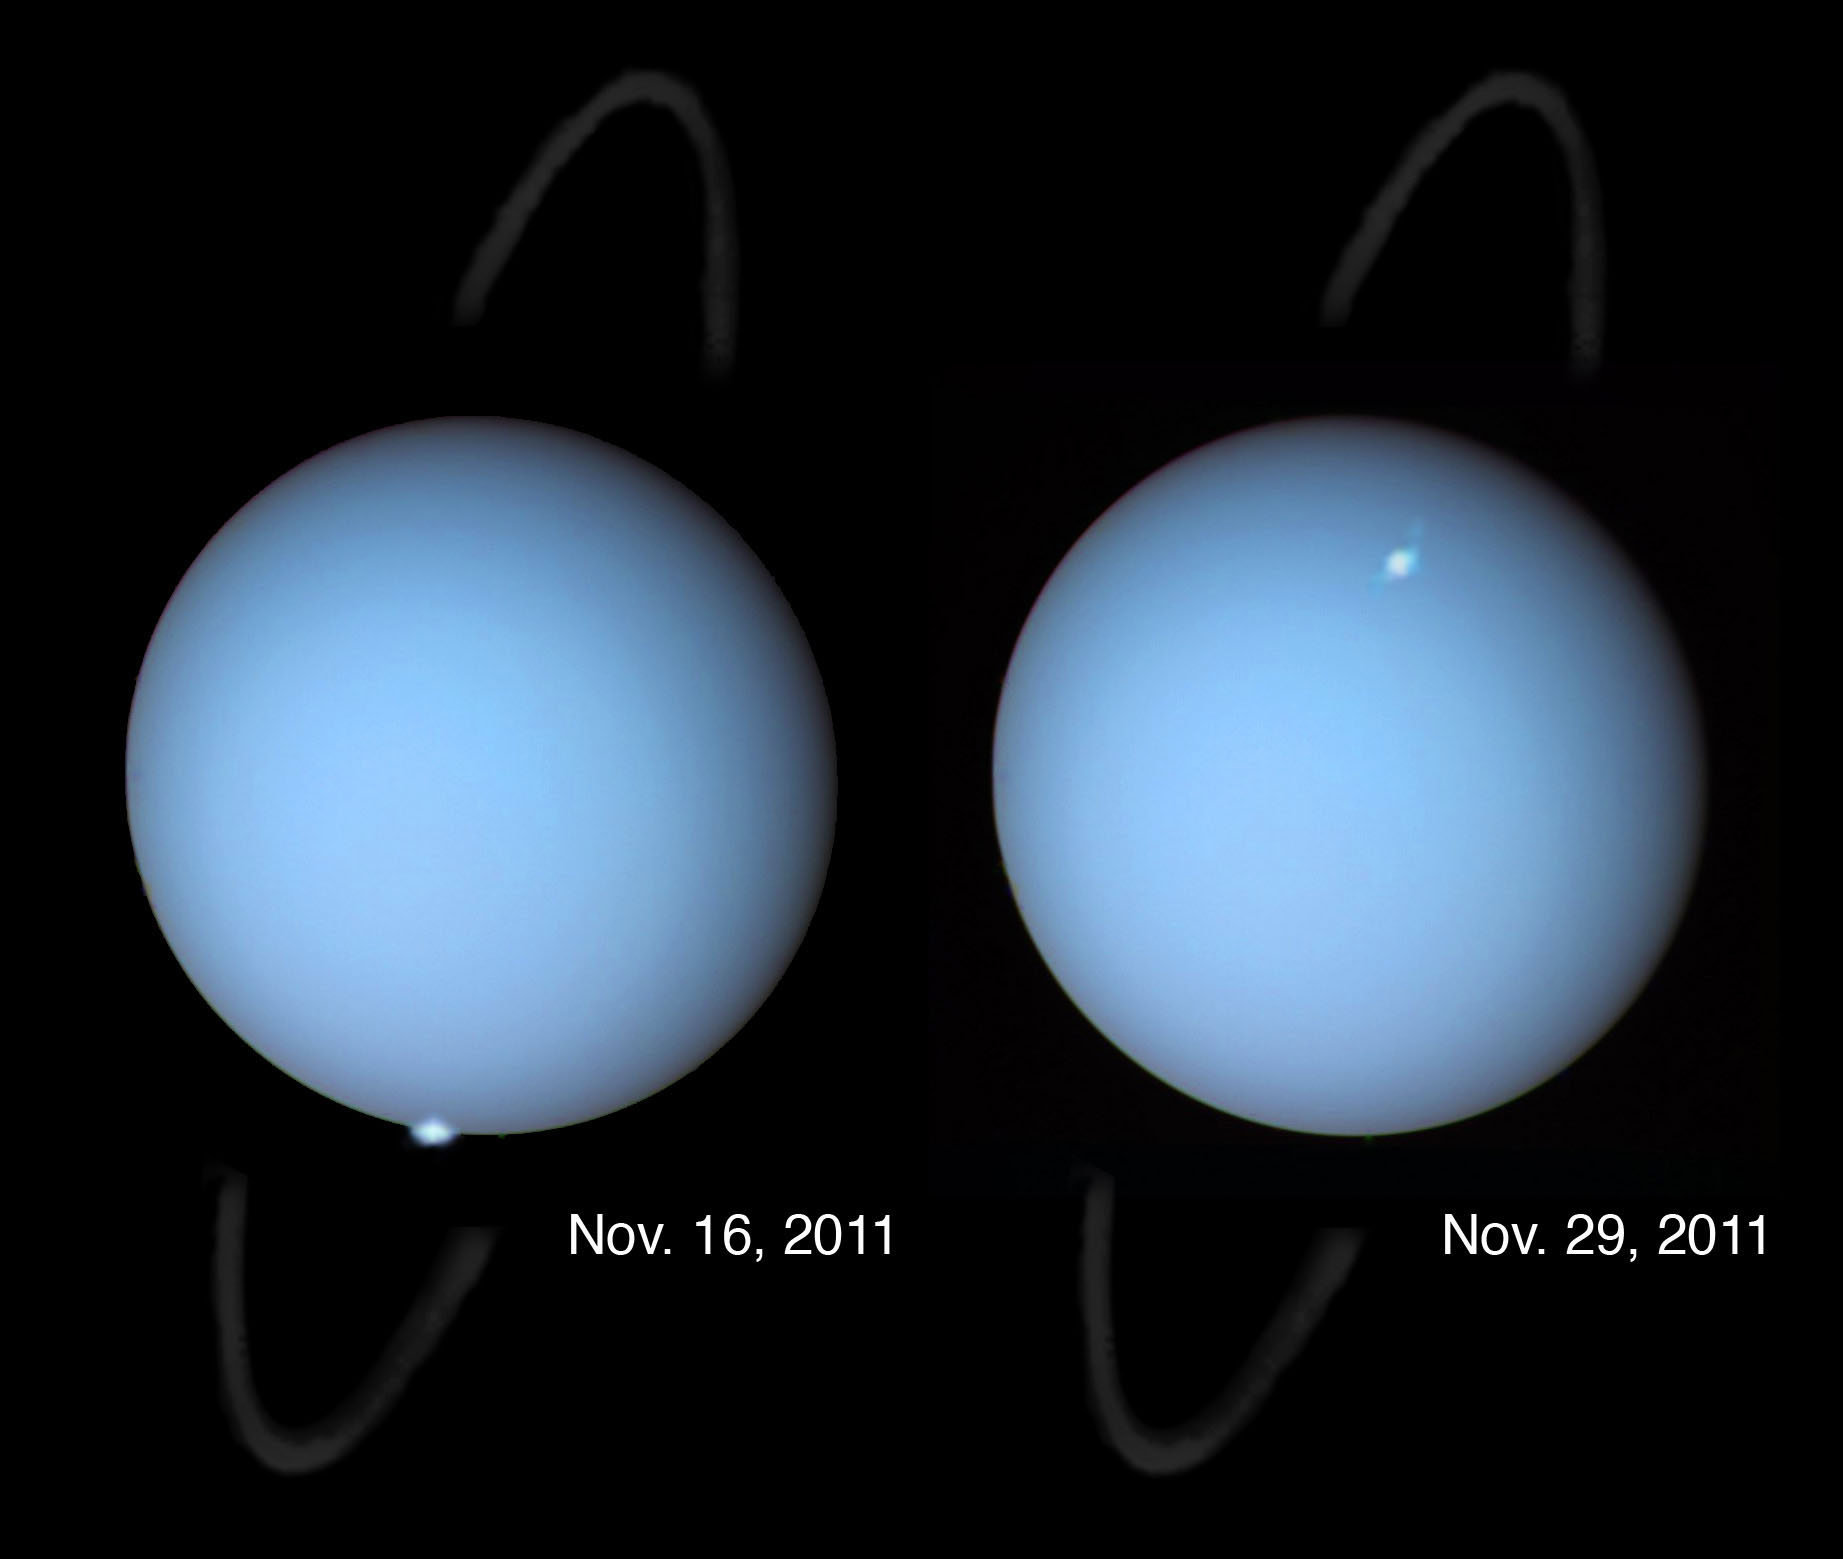 nasa photos of uranus - photo #20